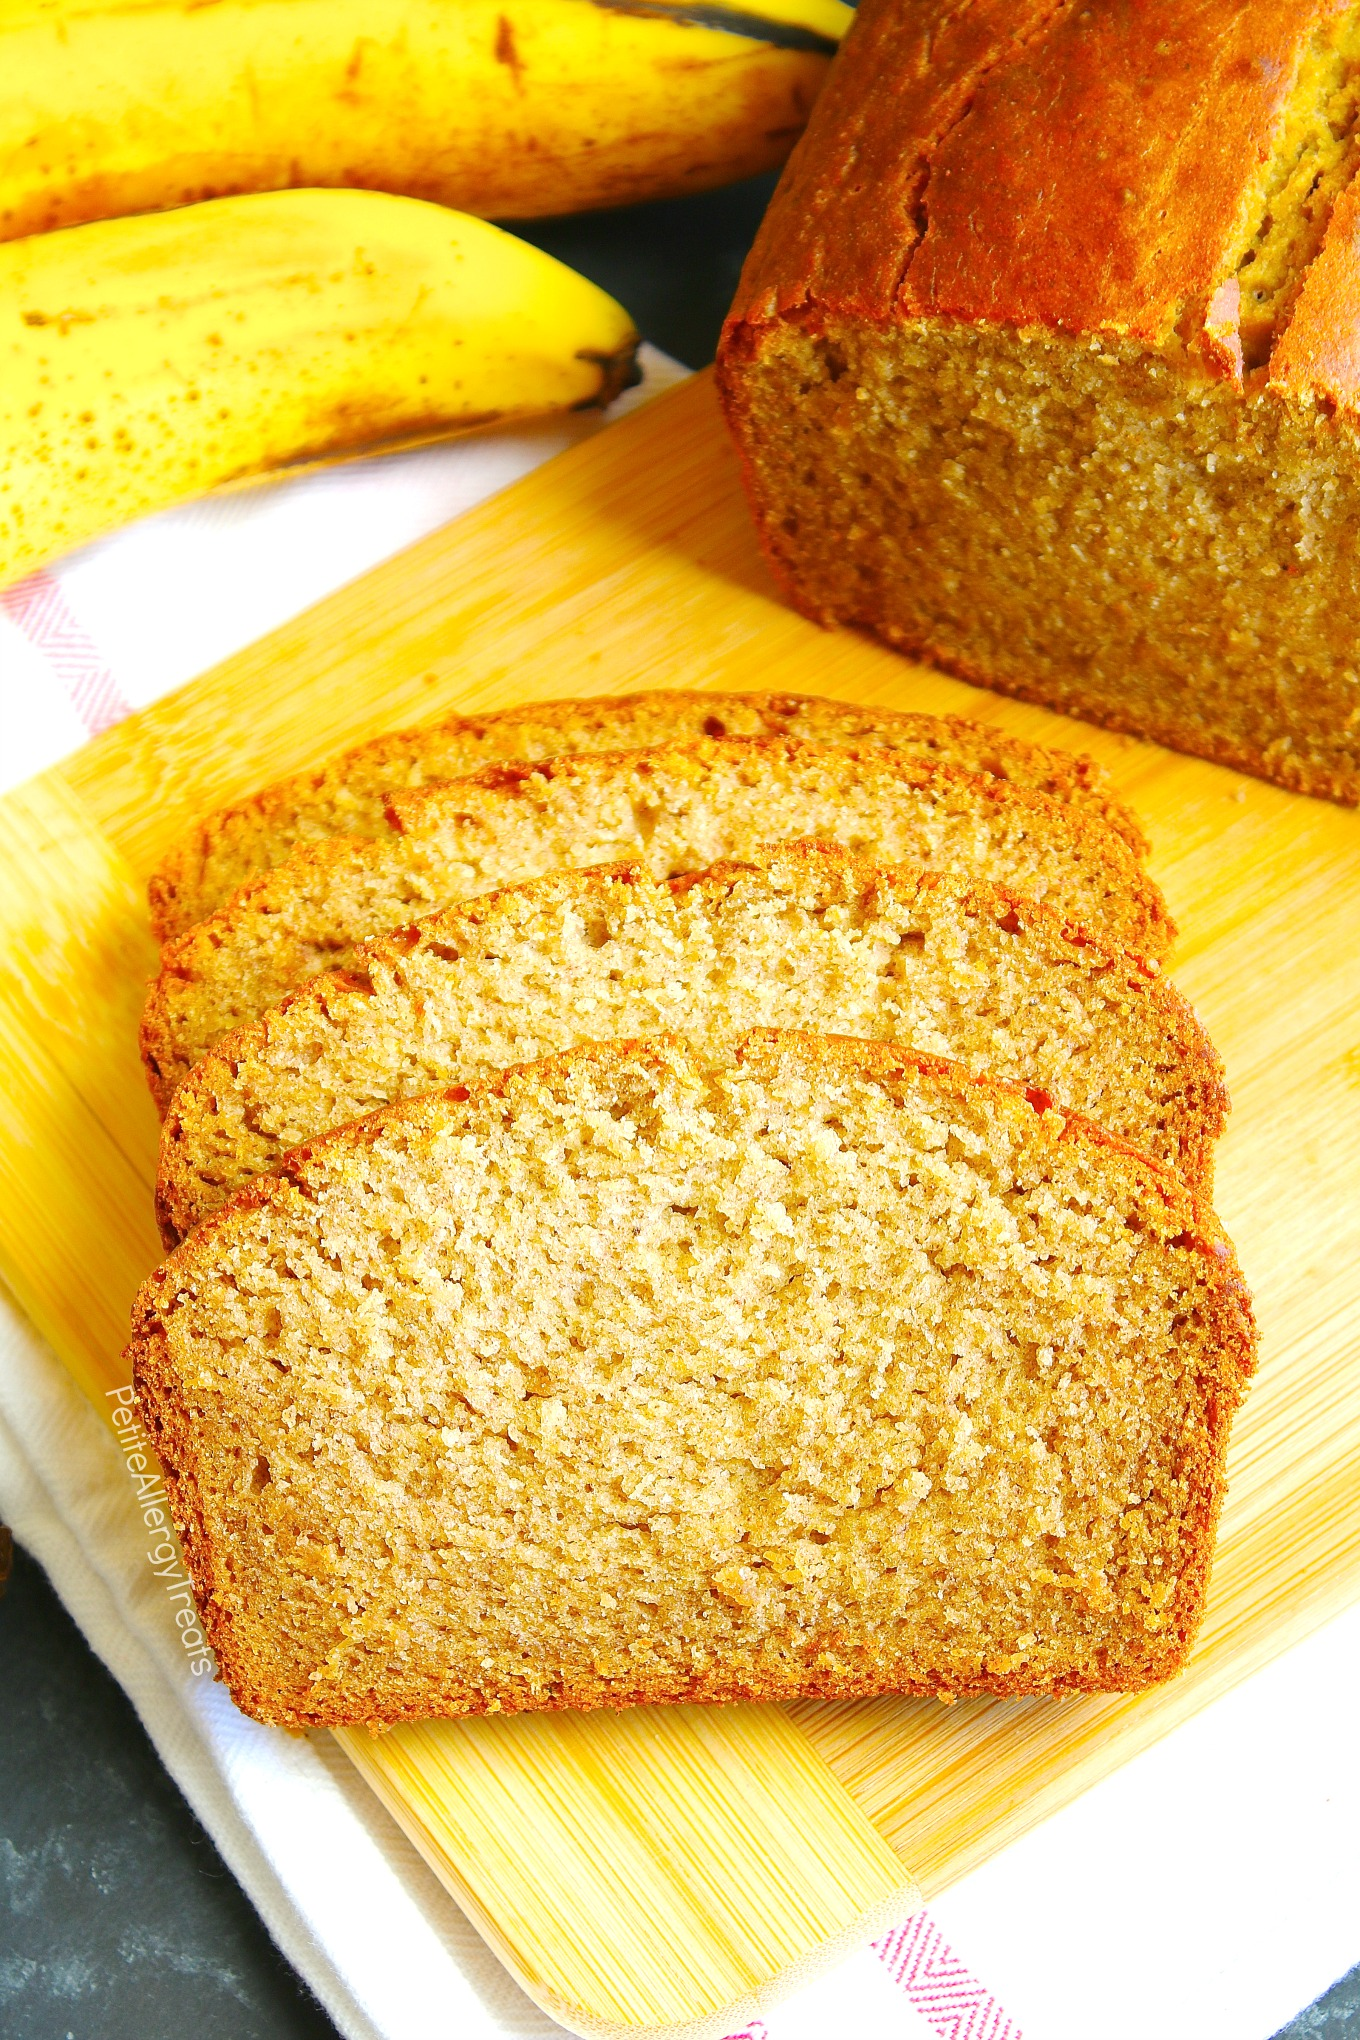 Easy Banana Bread Recipe (vegan gluten free egg free dairy free) A gluten free beginner's easy recipe! No mixer required and is egg free, dairy free and Food Allergy Friendly!